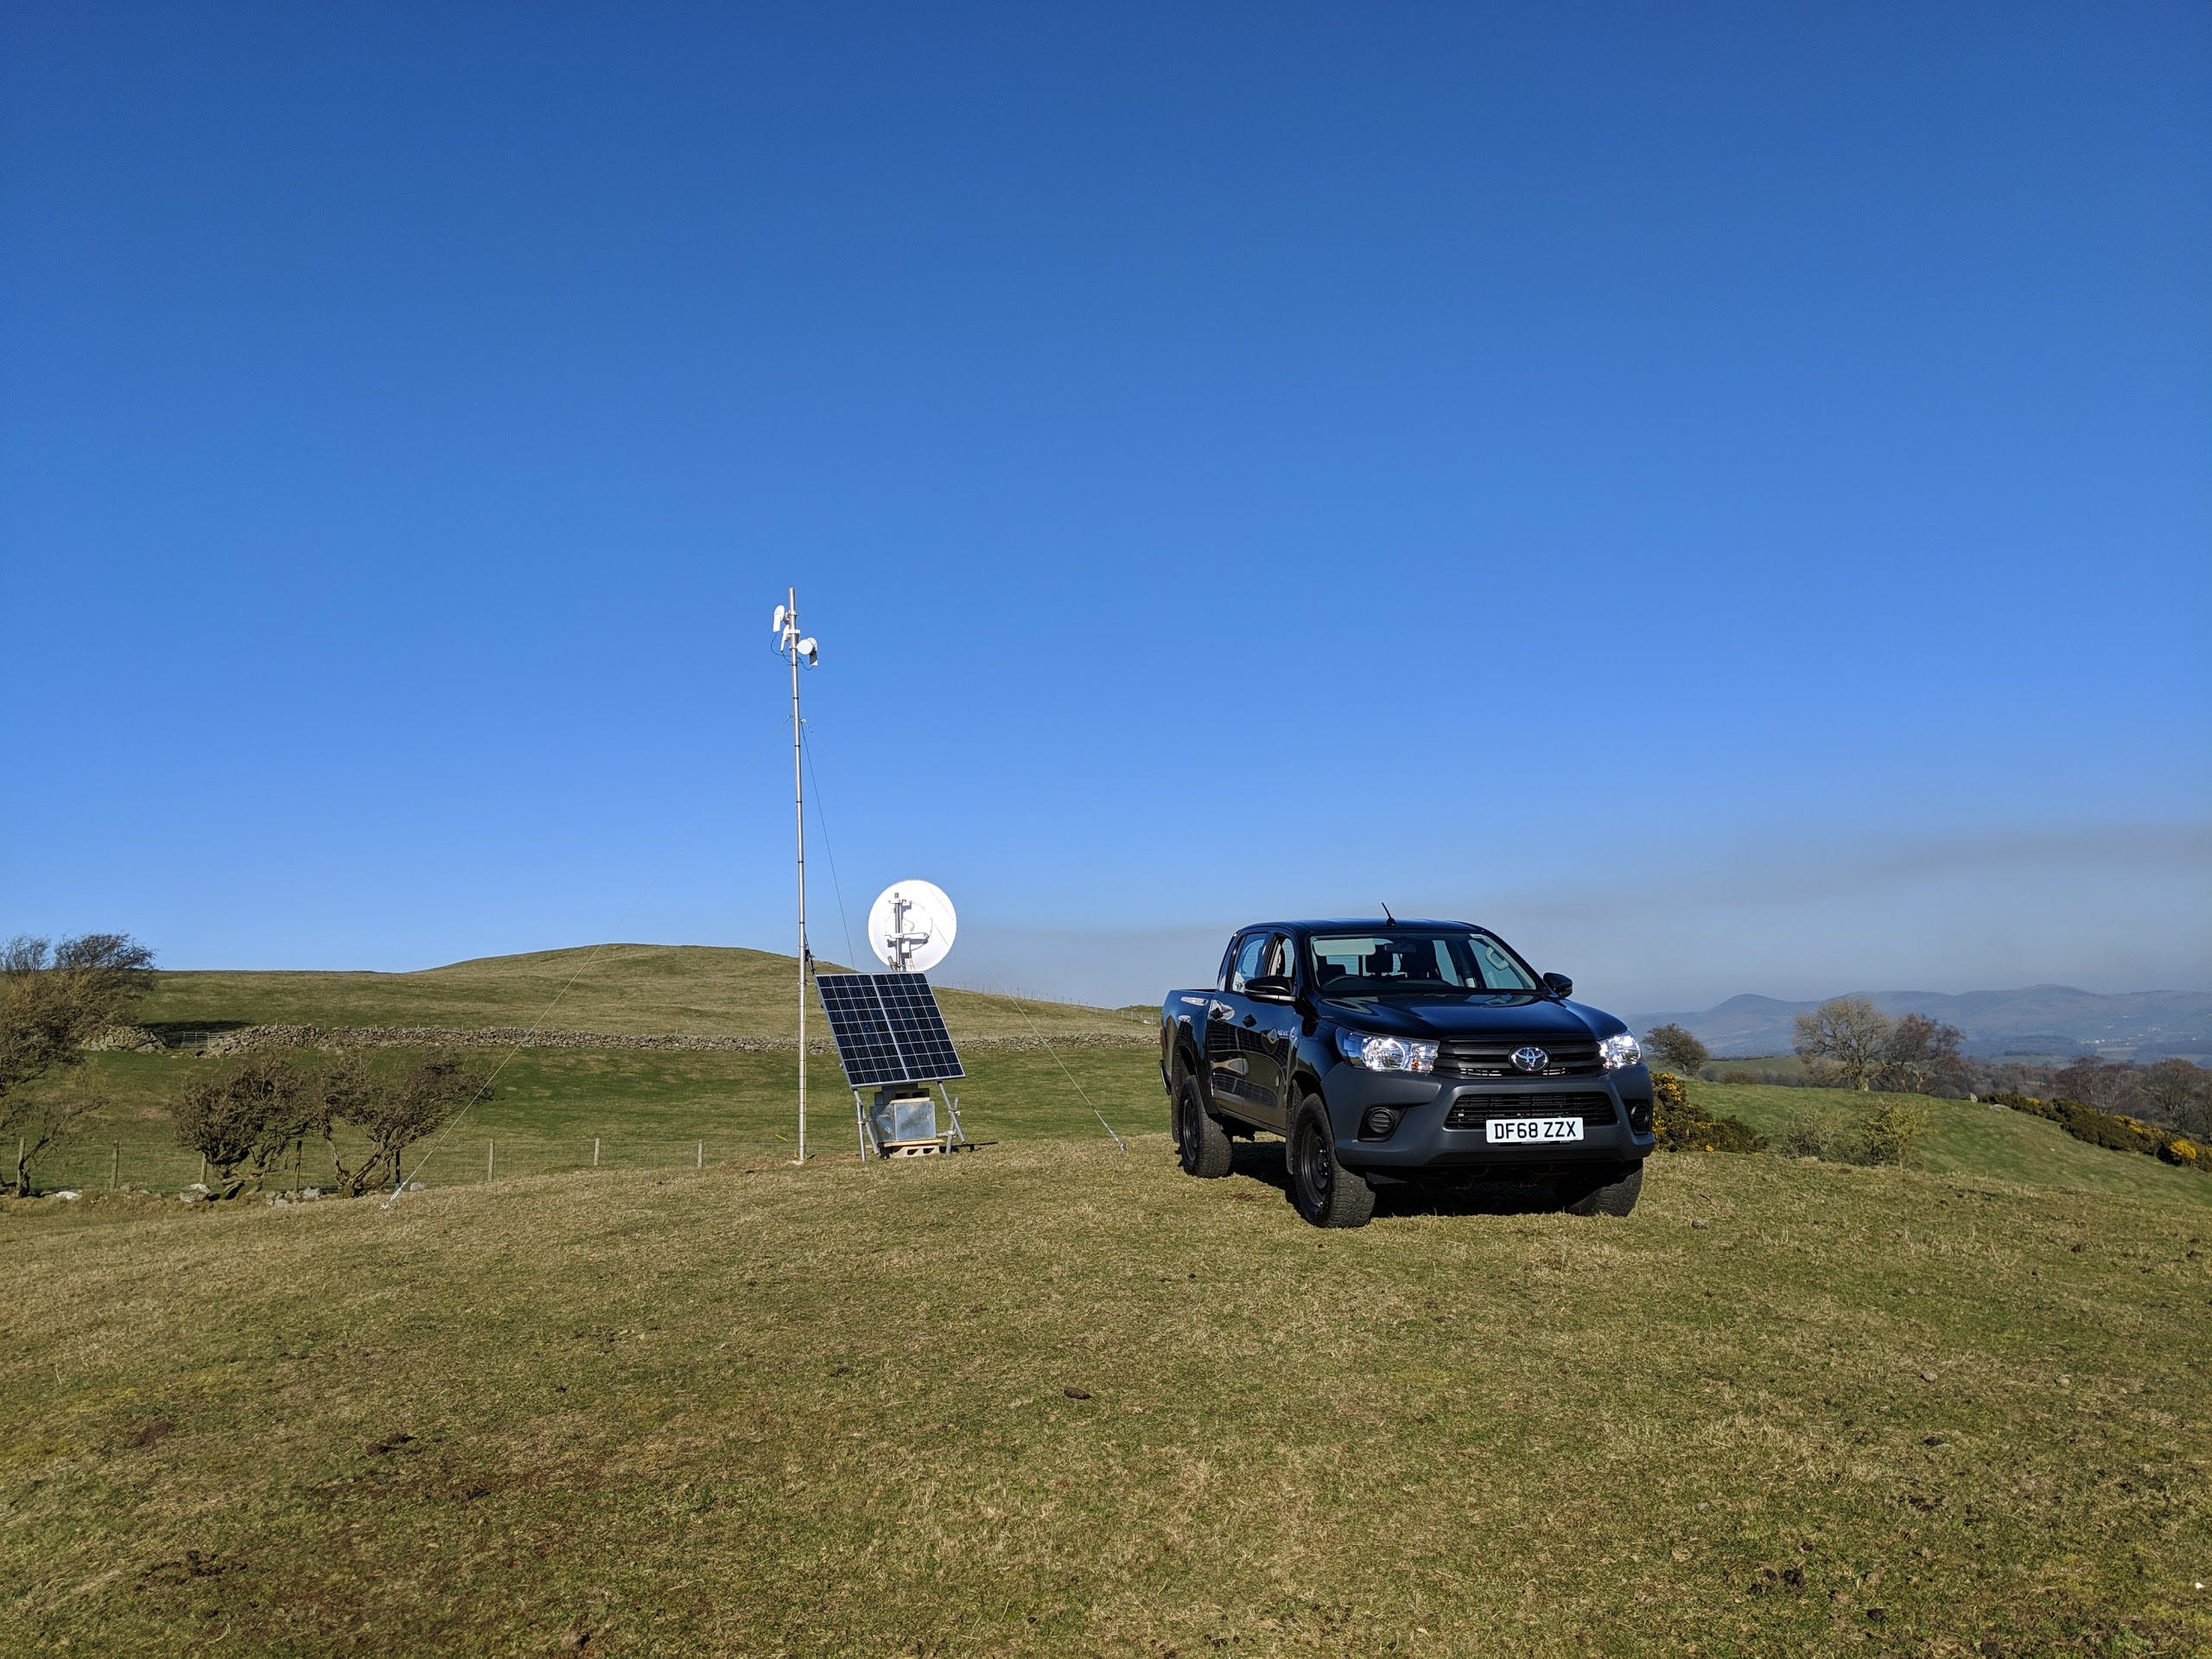 A view of a mast with a pickup truck on a hill